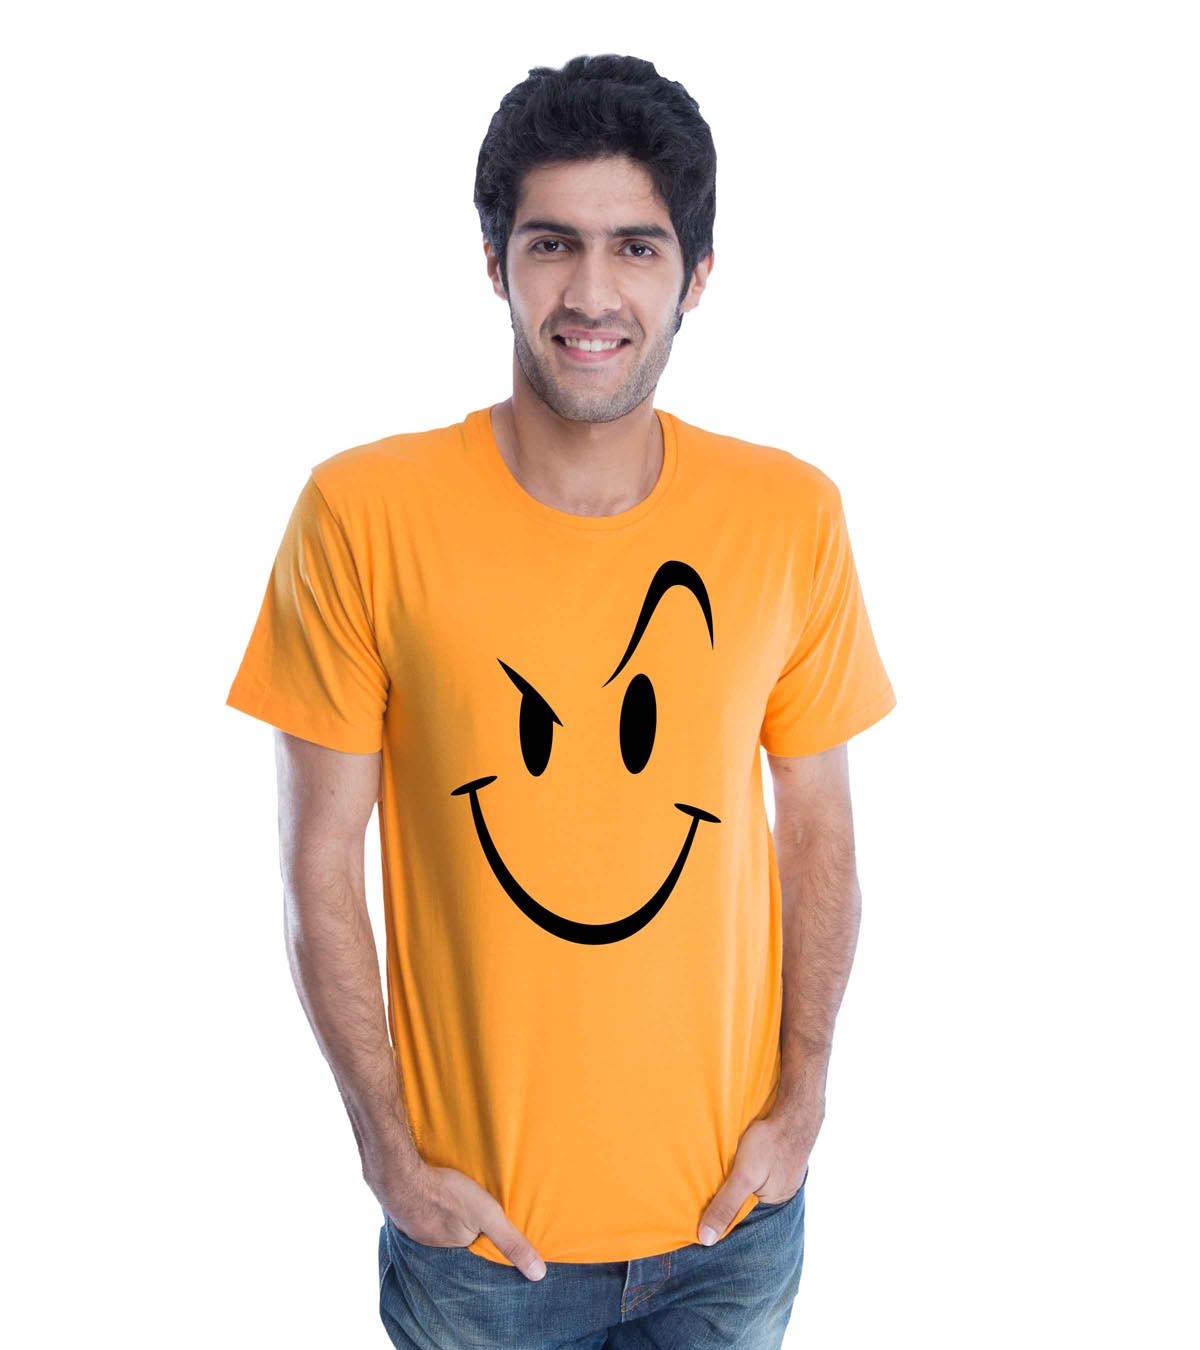 Naughty Smiley (Golden Yellow) Guys Tee